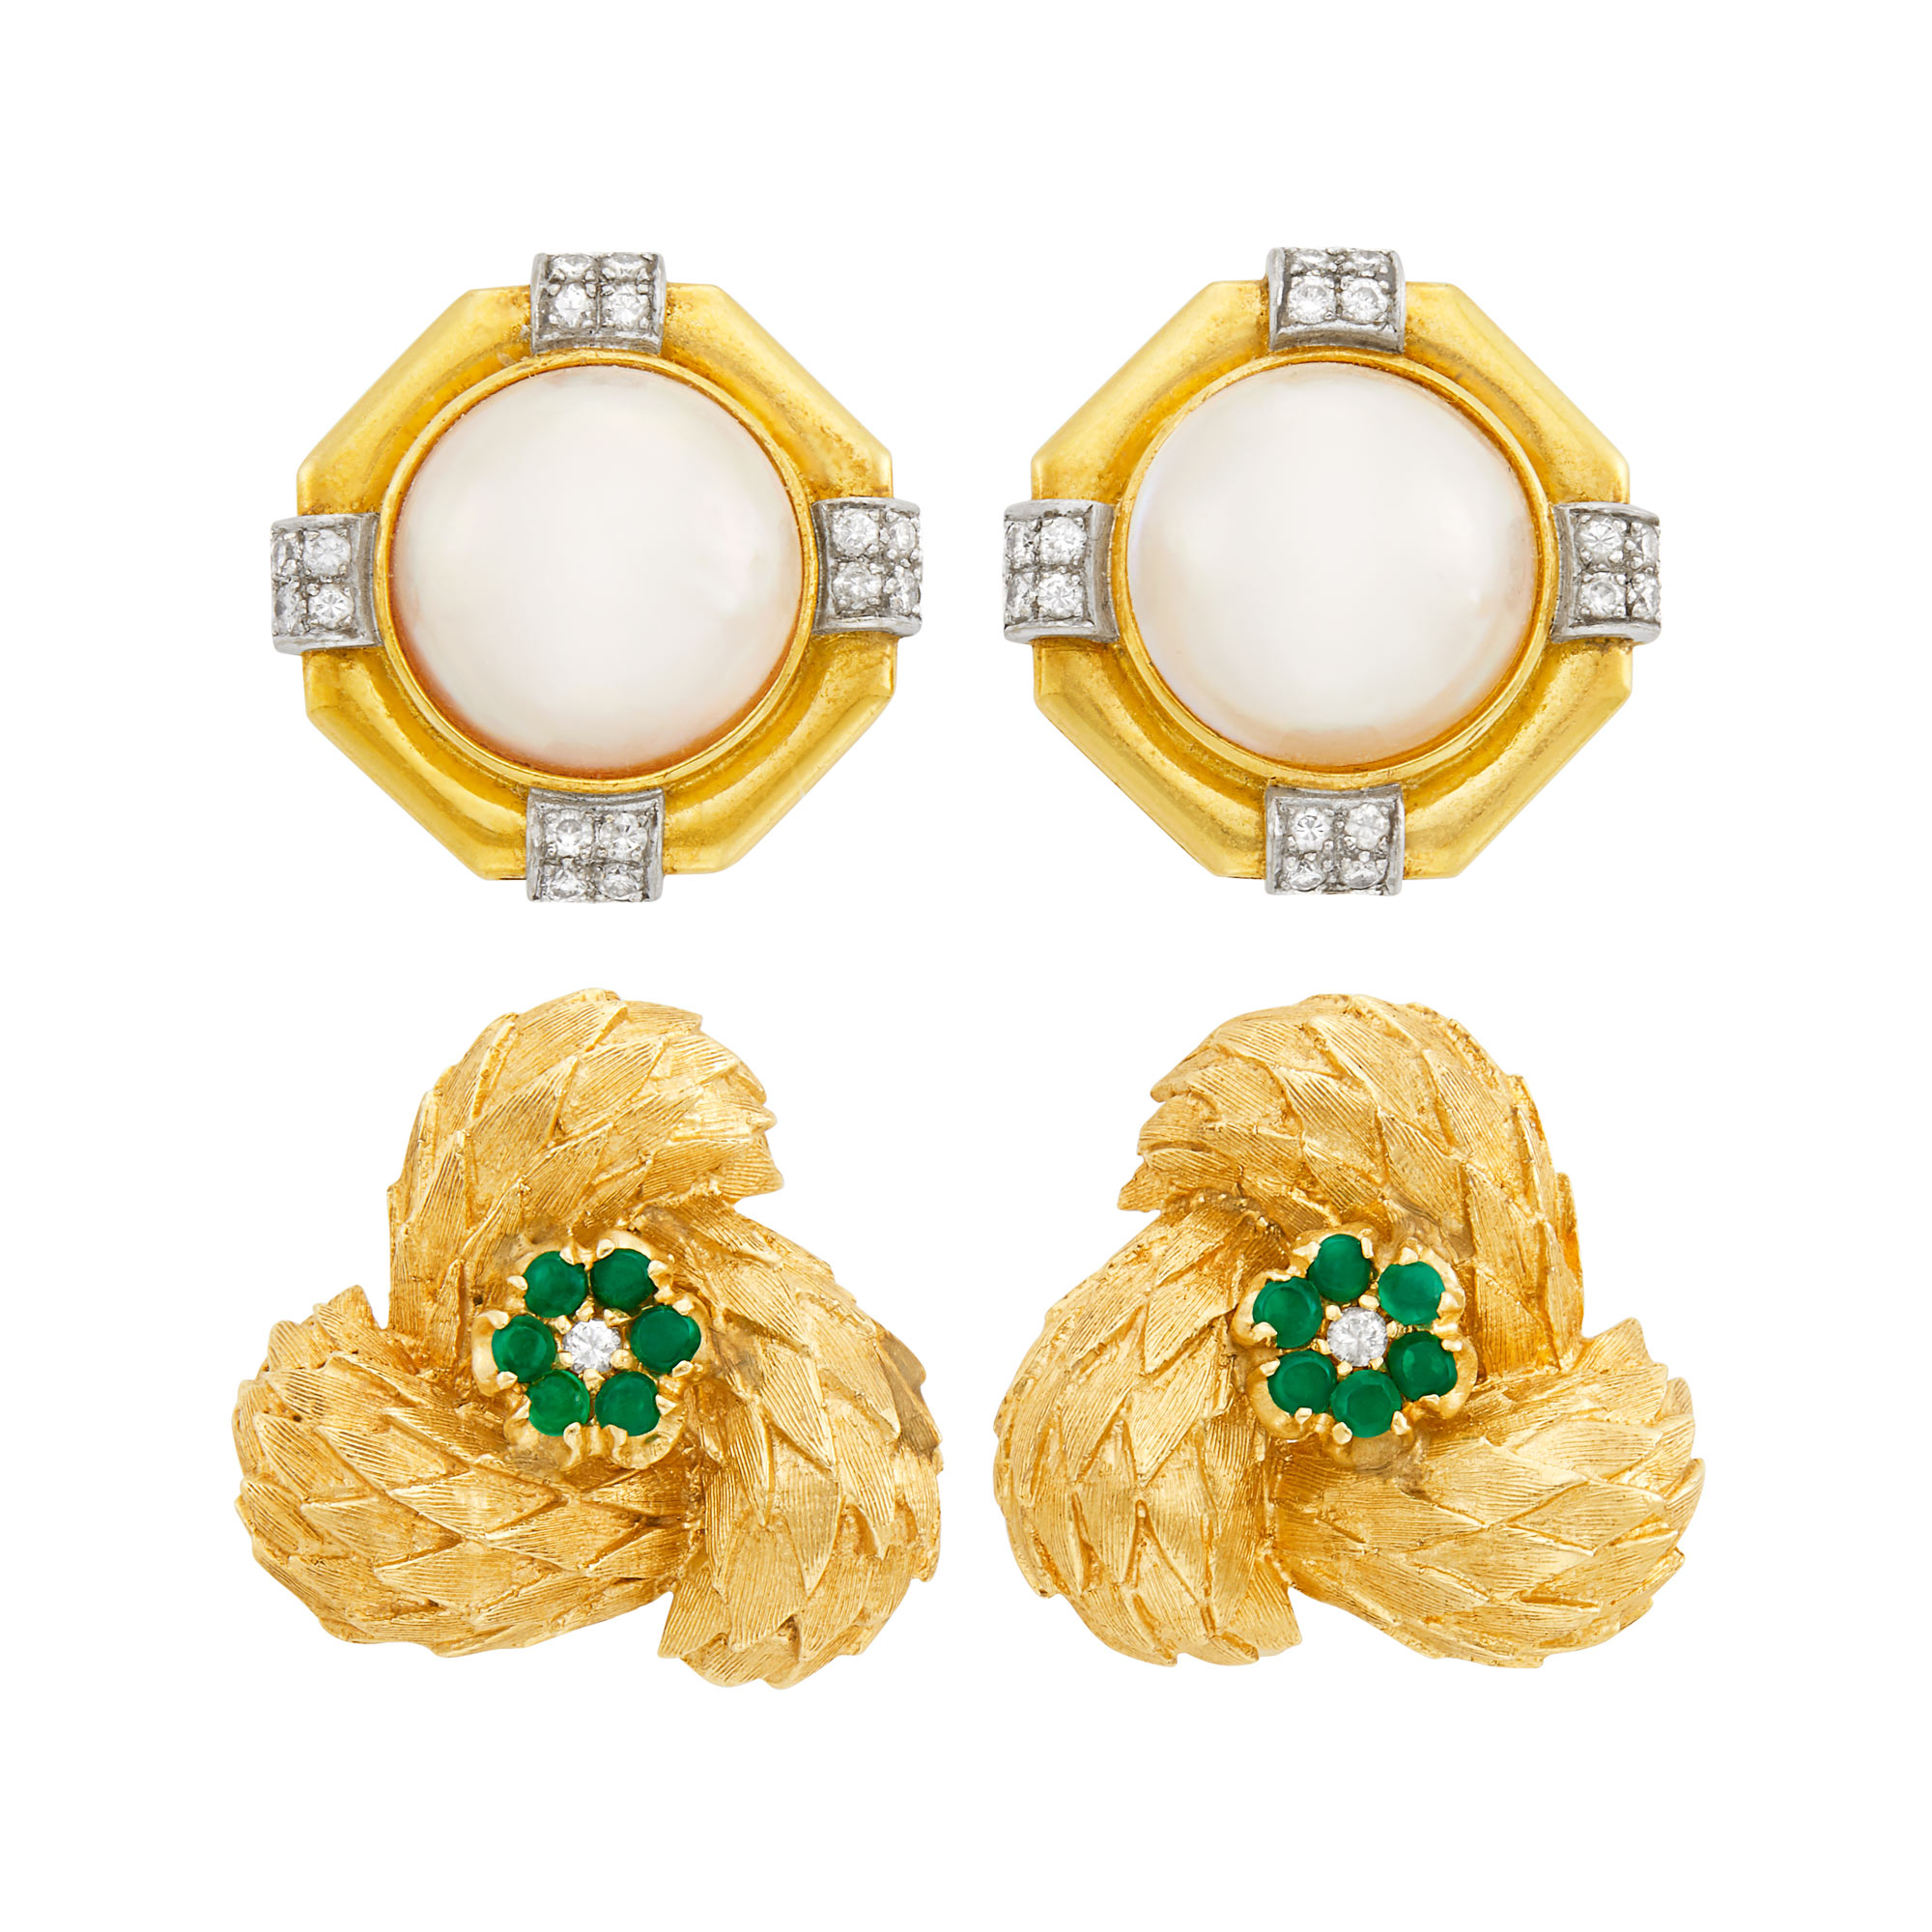 Lot image - Pair of Gold, Green Onyx and Diamond Earclips and Gold, Mabé Pearl and Diamond Earclips